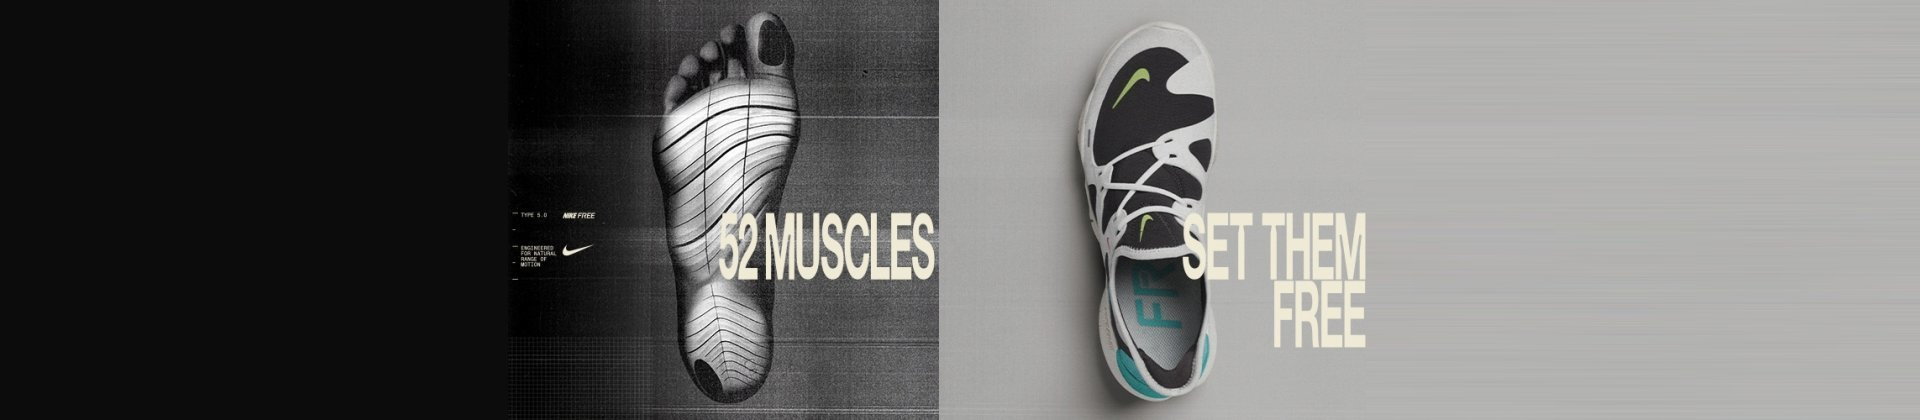 cheaper 2f4b8 2a6be Nike Free   Running   Fitness   Elverys   Elverys Site